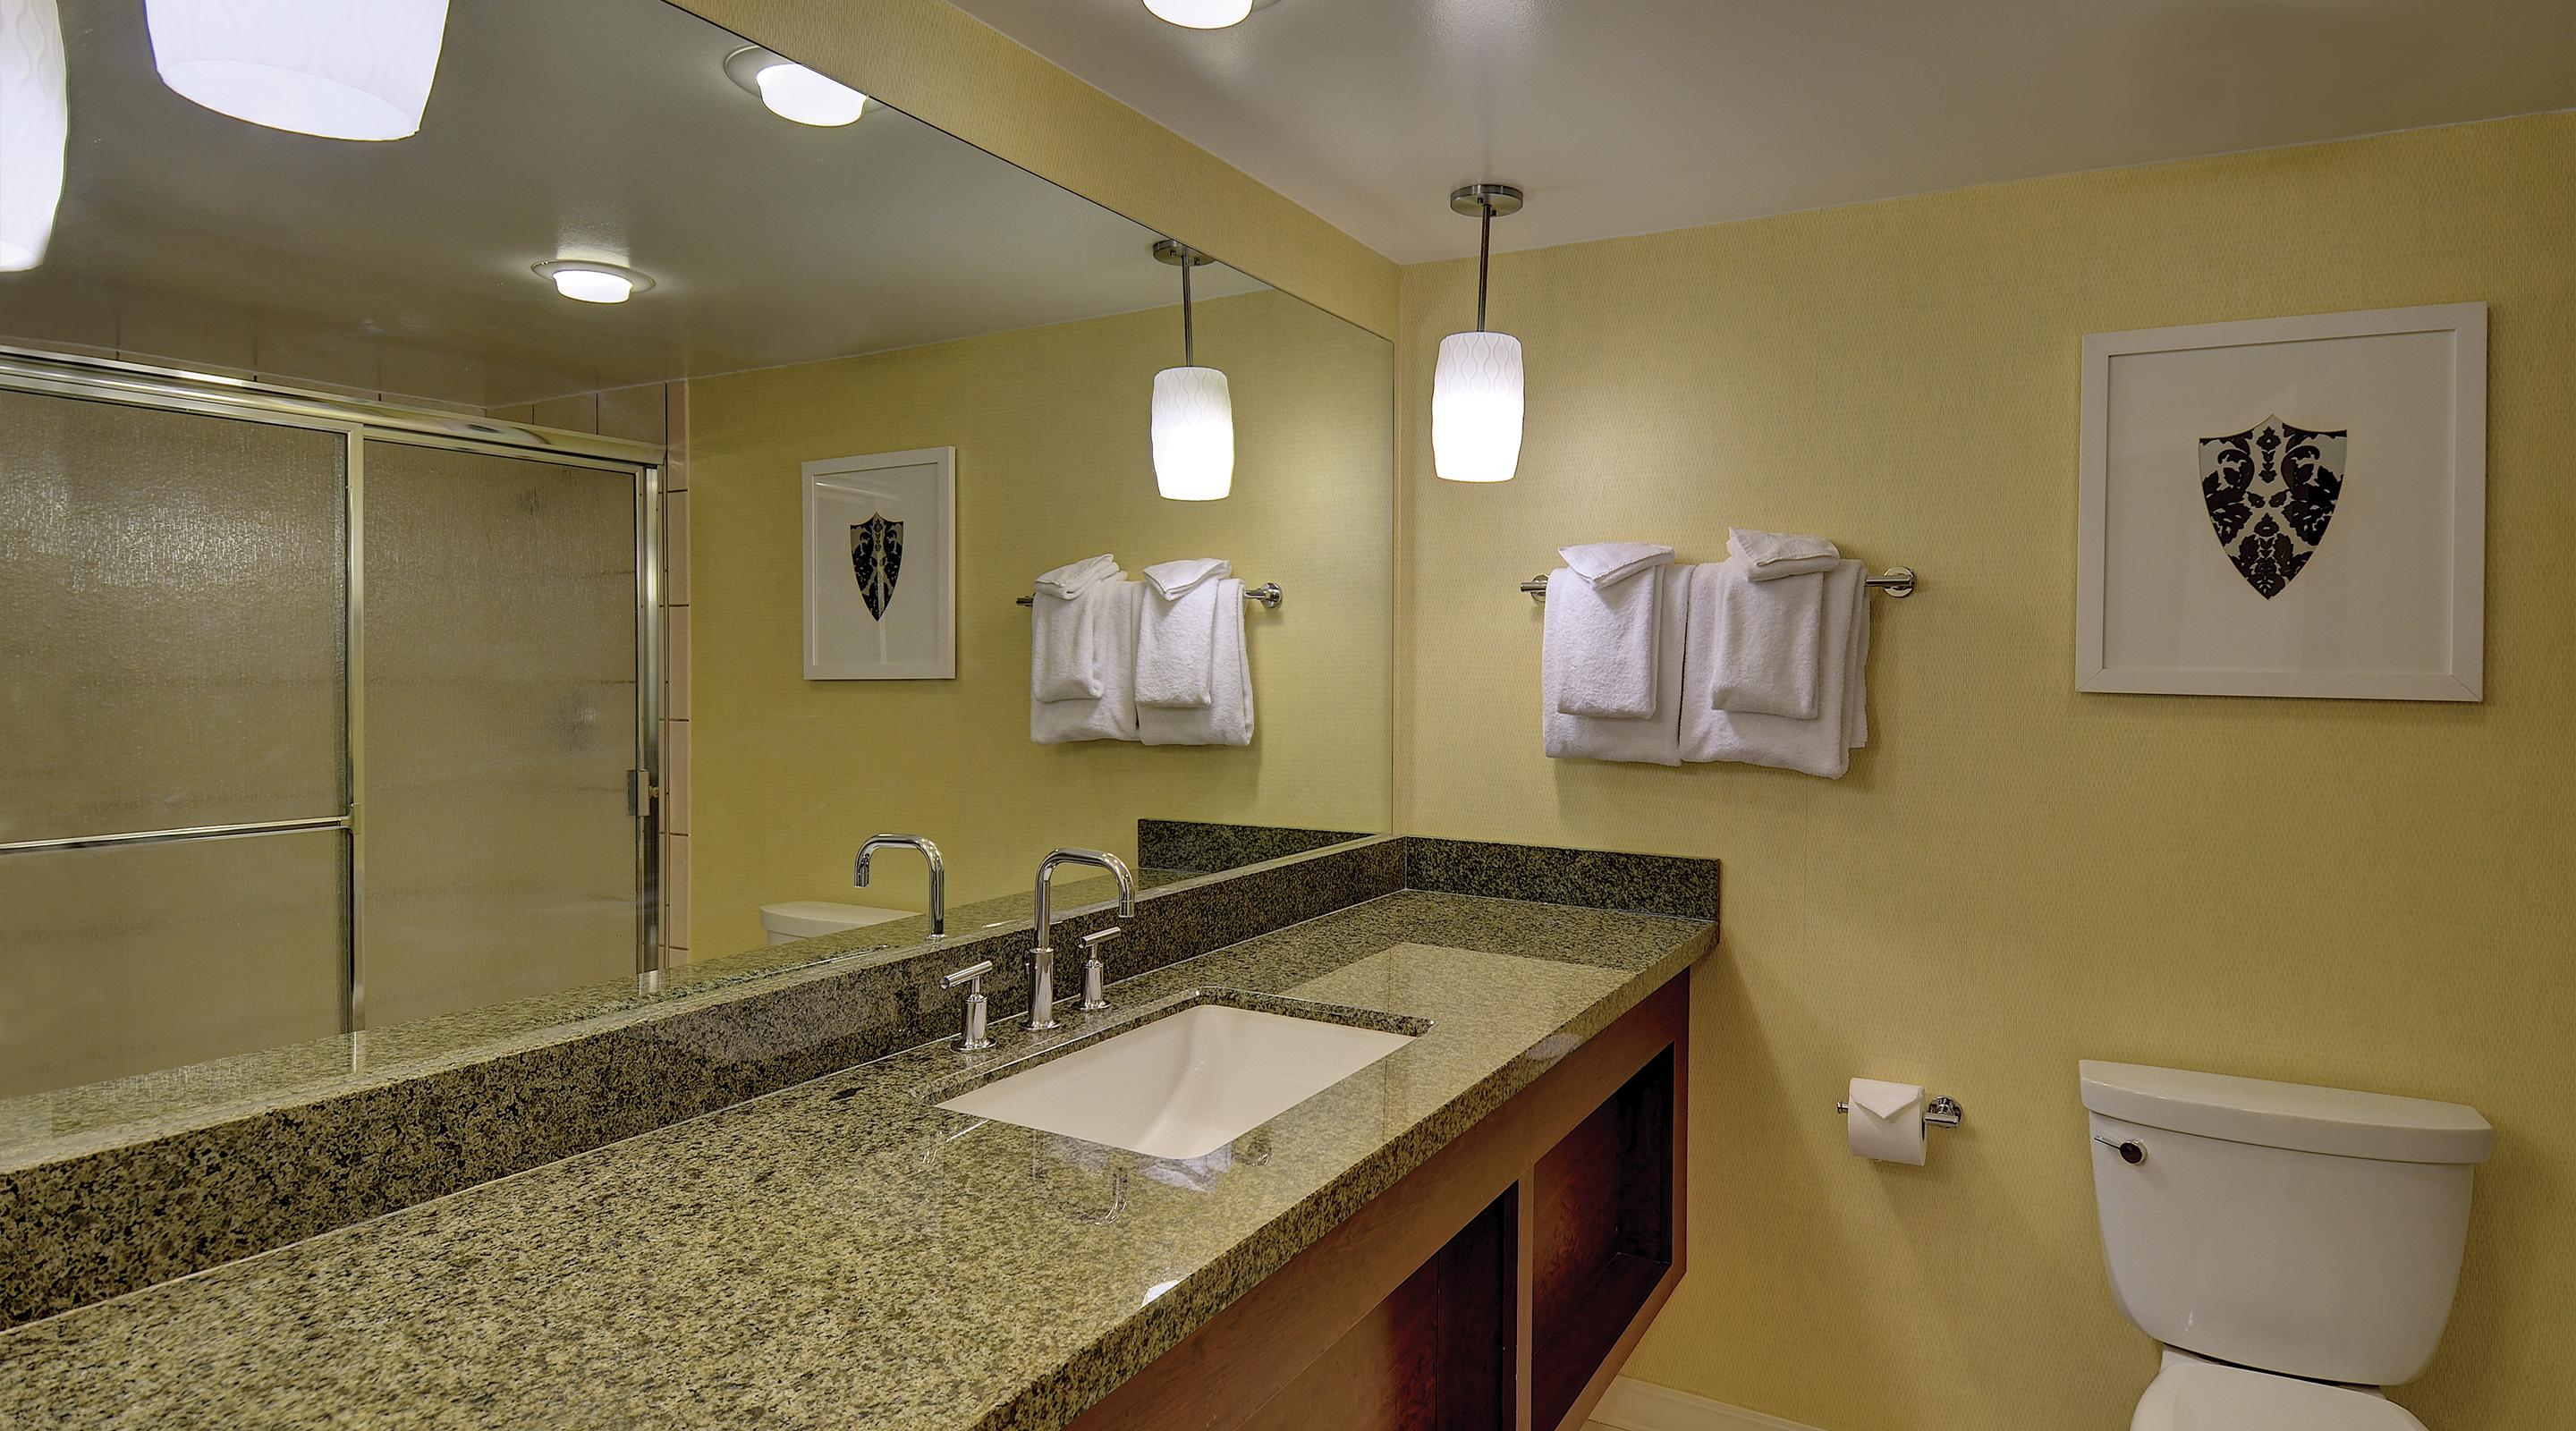 This is an image of the bathroom in the Resort Tower rooms.